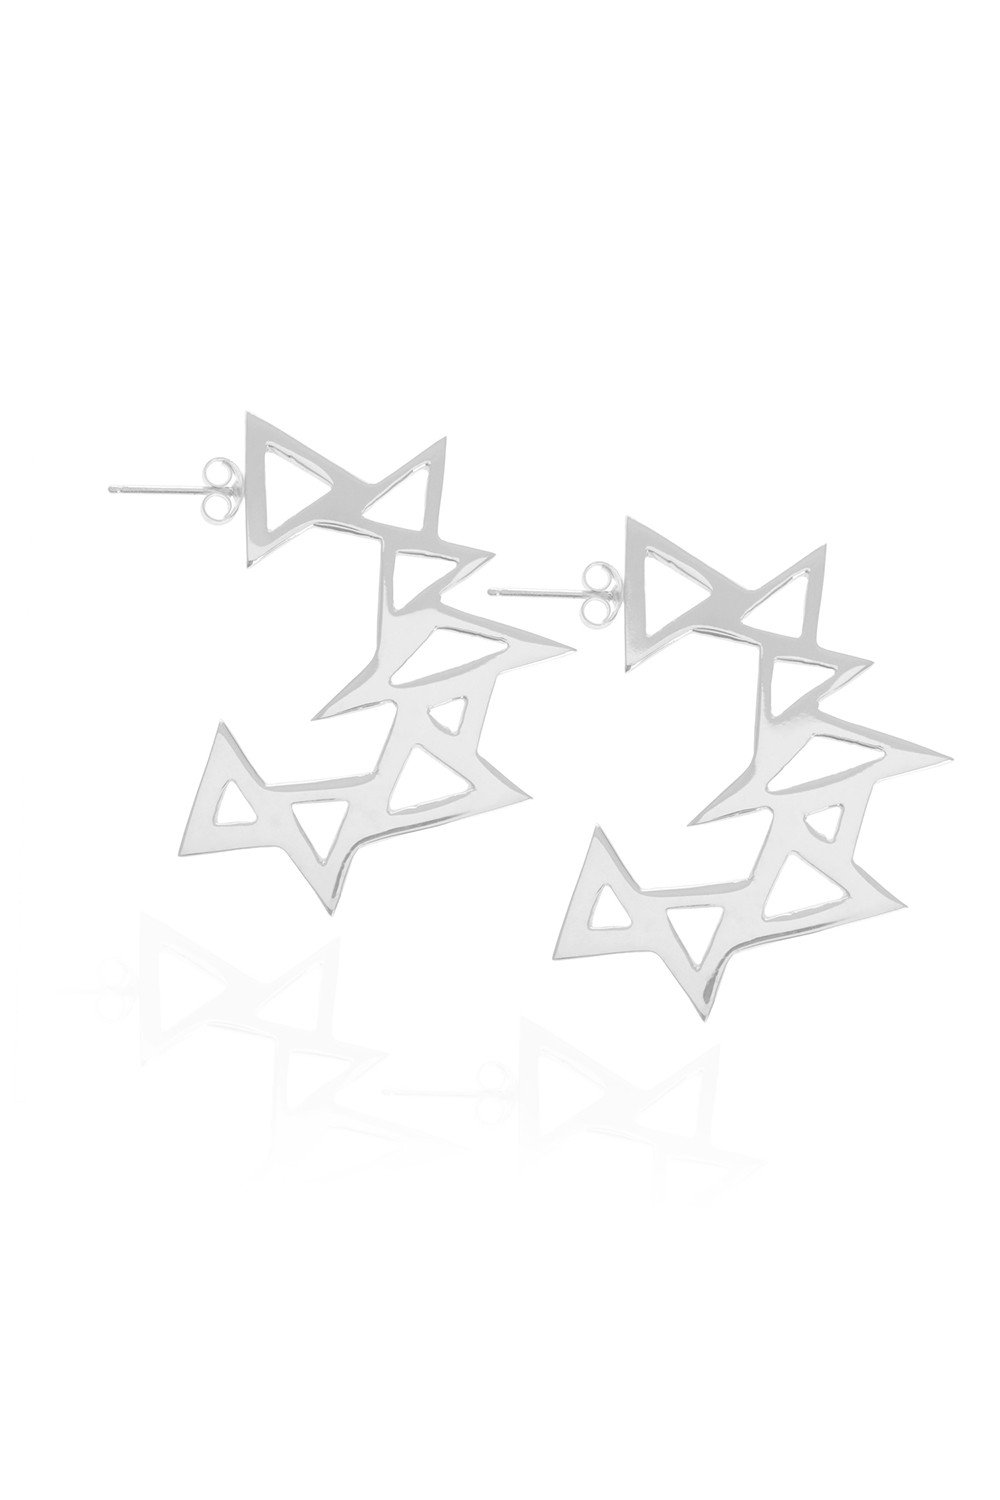 Throwing Star, Silver Earrings by Sally Lane Jewellery on curated-crowd.com